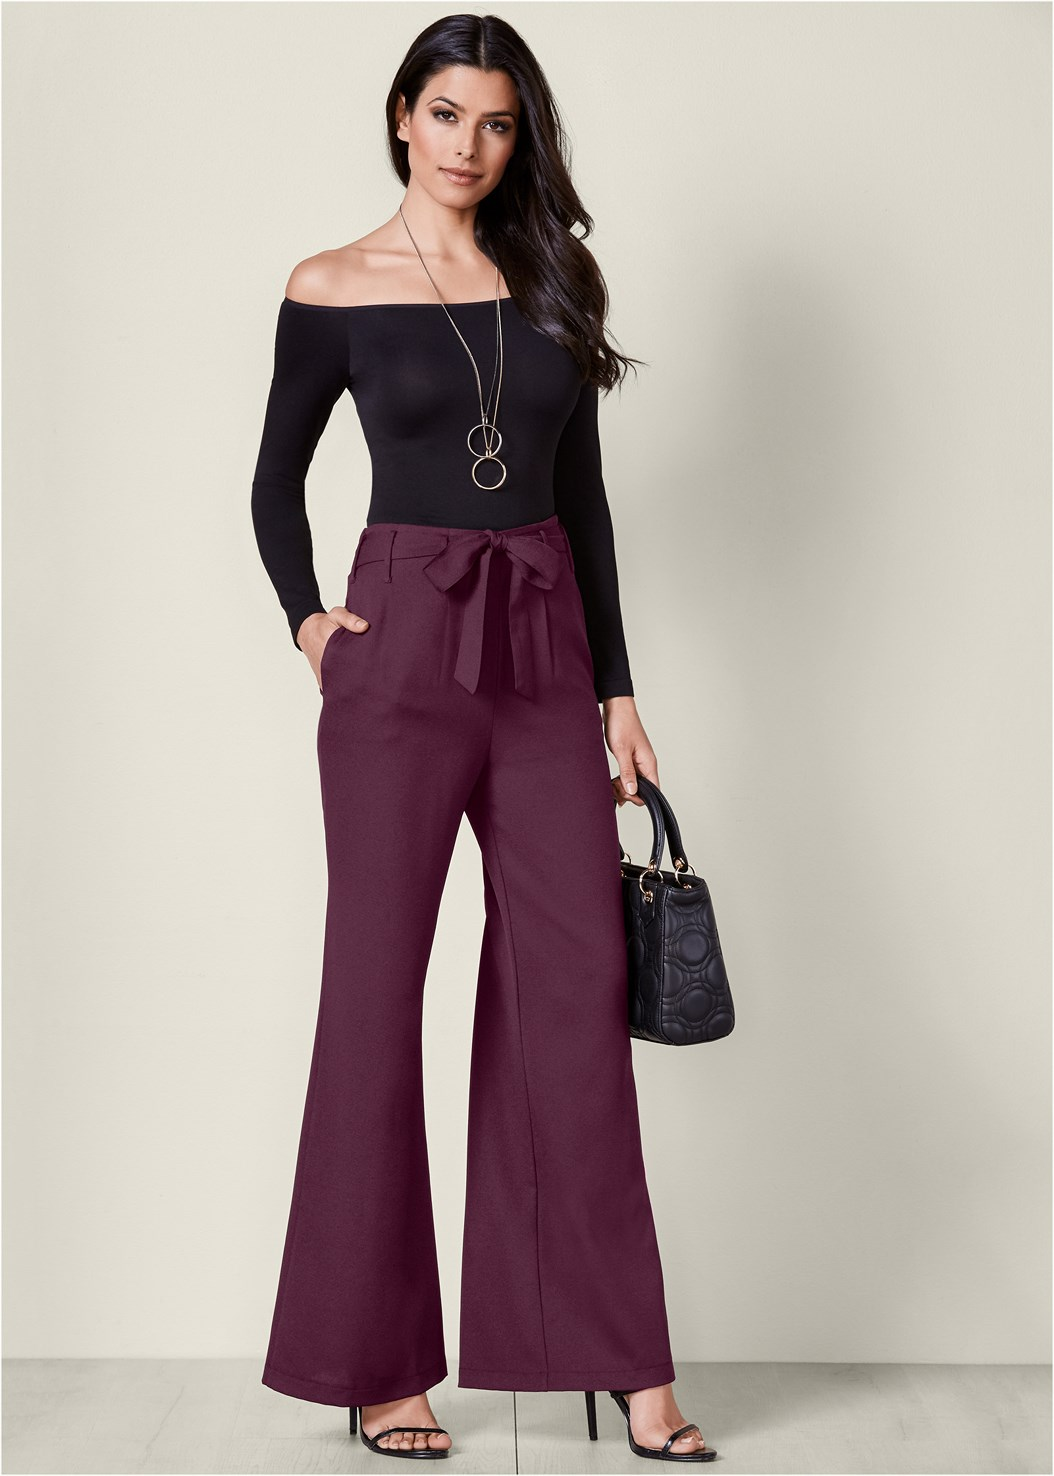 Belted Wide Leg Pants,Off The Shoulder Top,High Heel Strappy Sandals